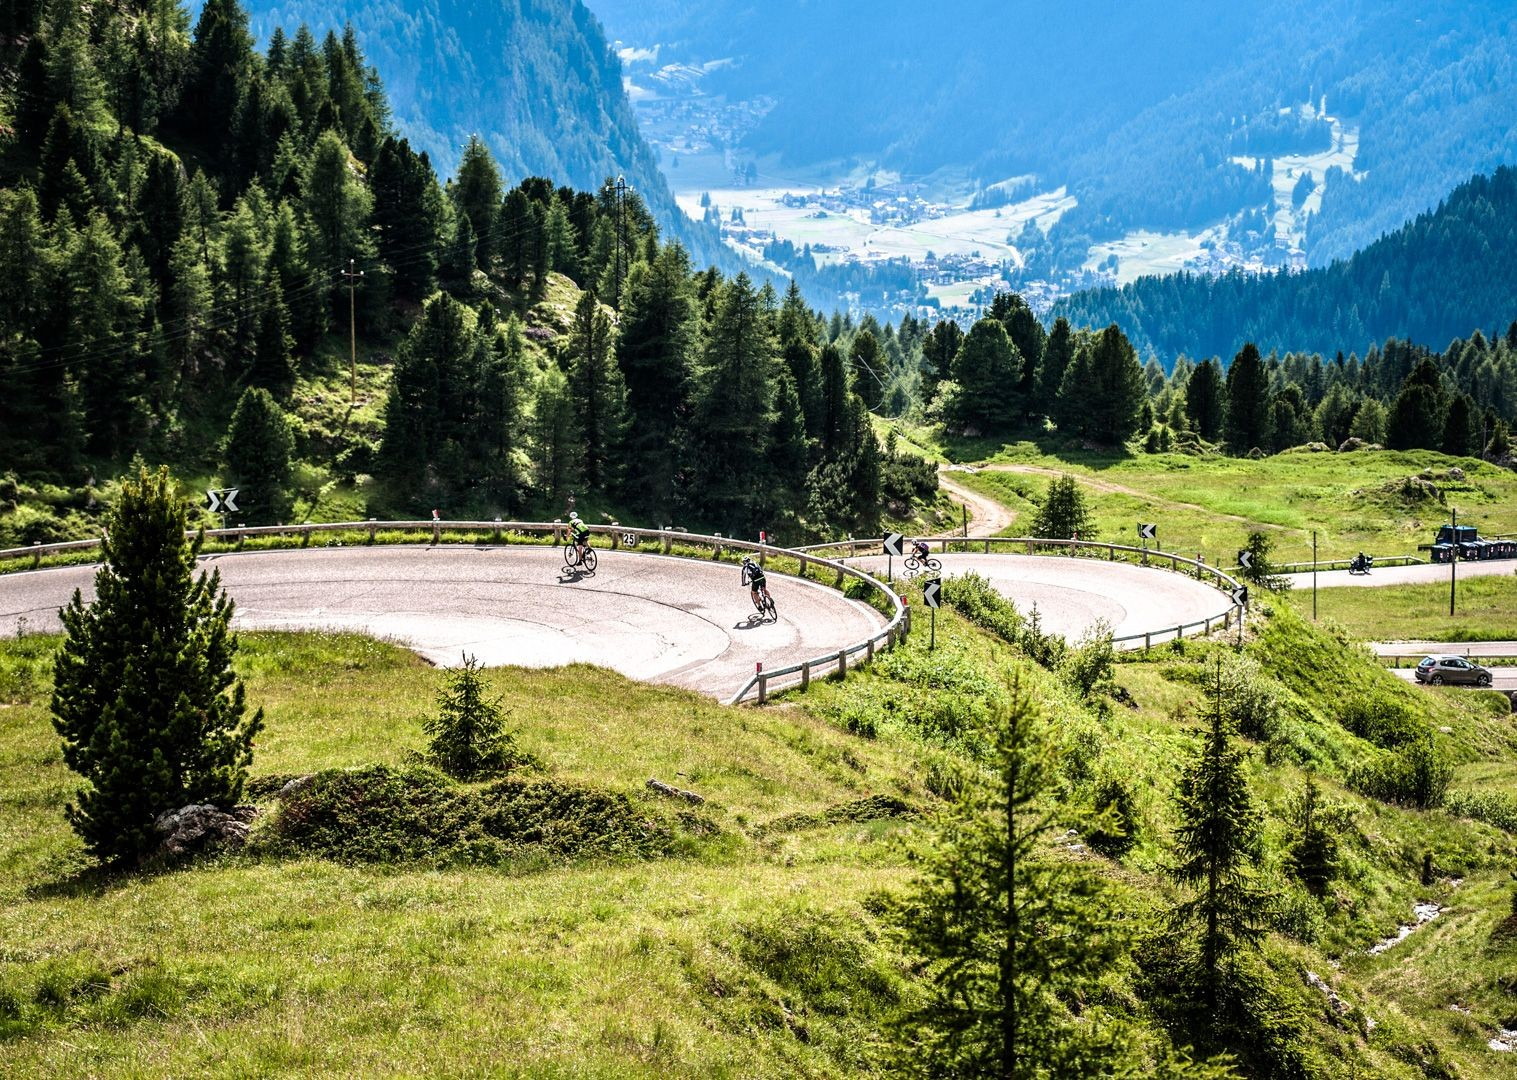 climb-the-zoncalan-italian-dolomites-guided-road-cycling.jpg - Italy - Alps and Dolomites - Giants of the Giro - Guided Road Cycling Holiday - Road Cycling